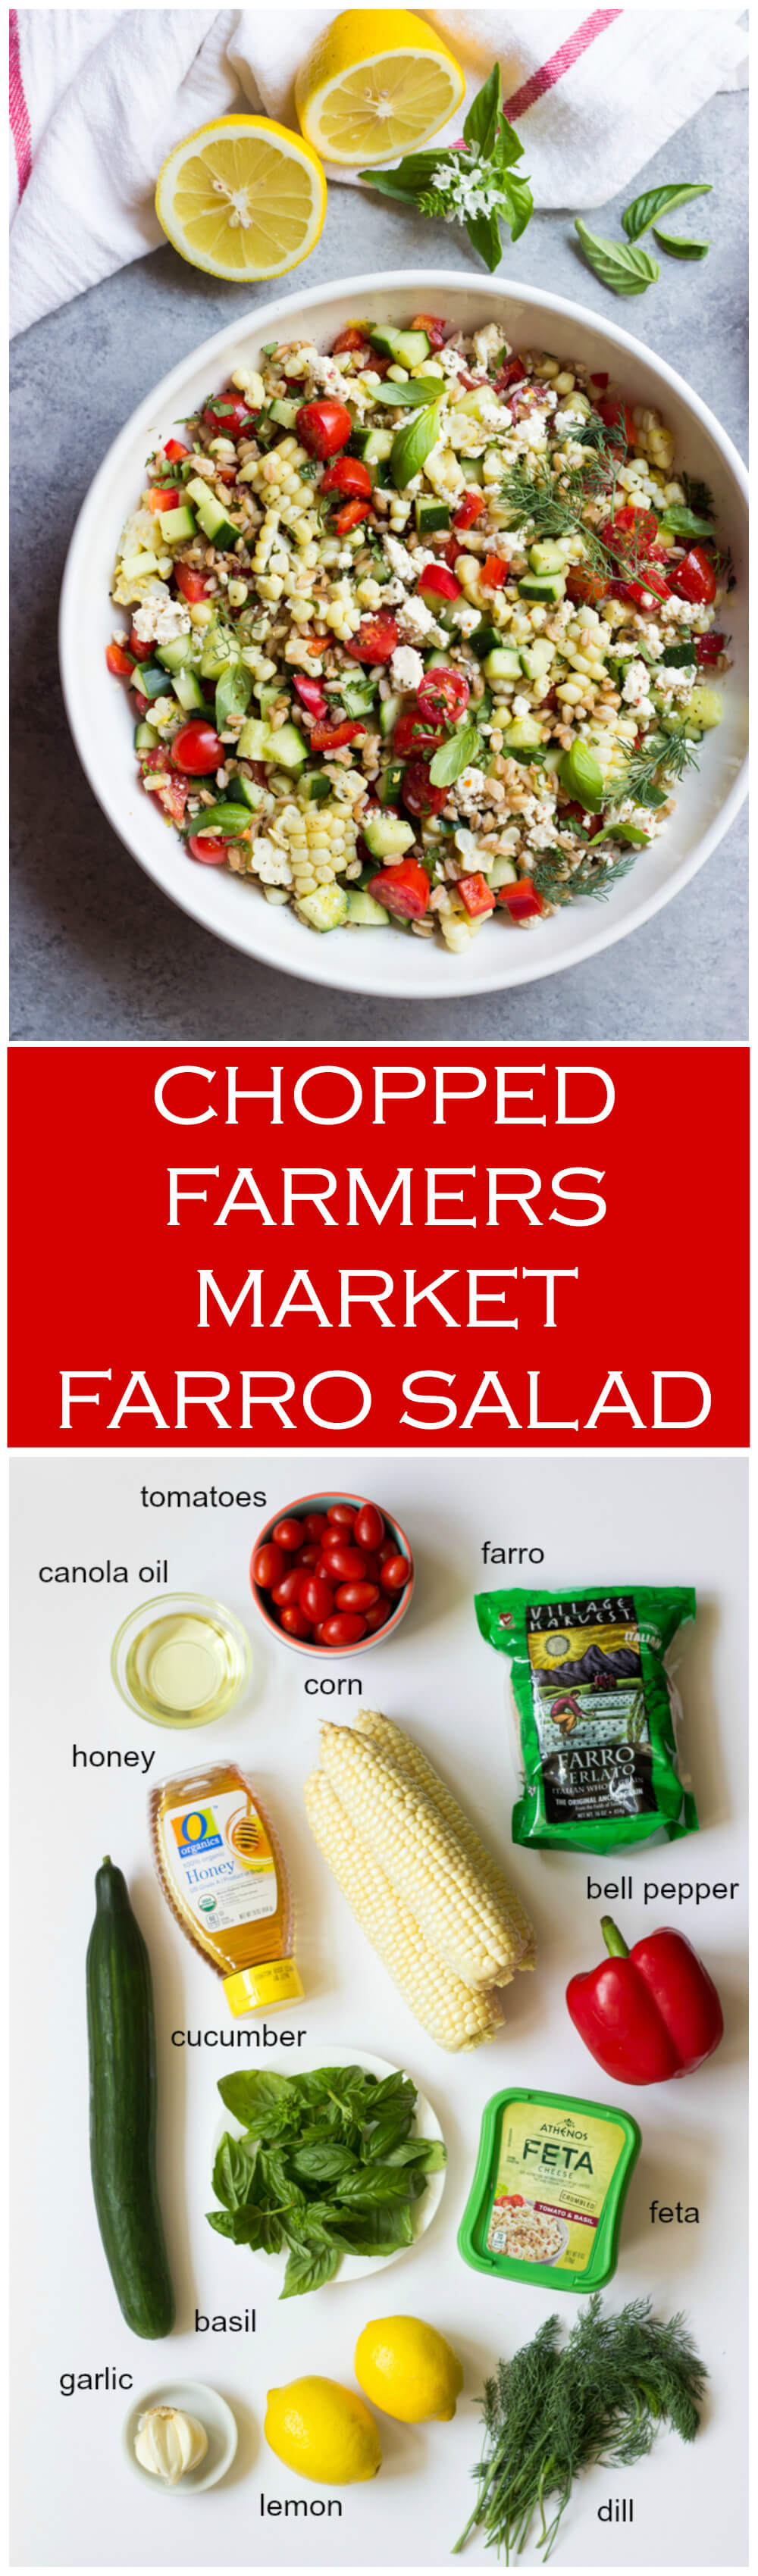 Chopped Farmers Market Farro Salad - loaded with good for you vegetables + hearty farro, and then tossed in the most flavorful honey lemon vinaigrette. Plus only at 156 calories! | littlebroken.com @littlebroken